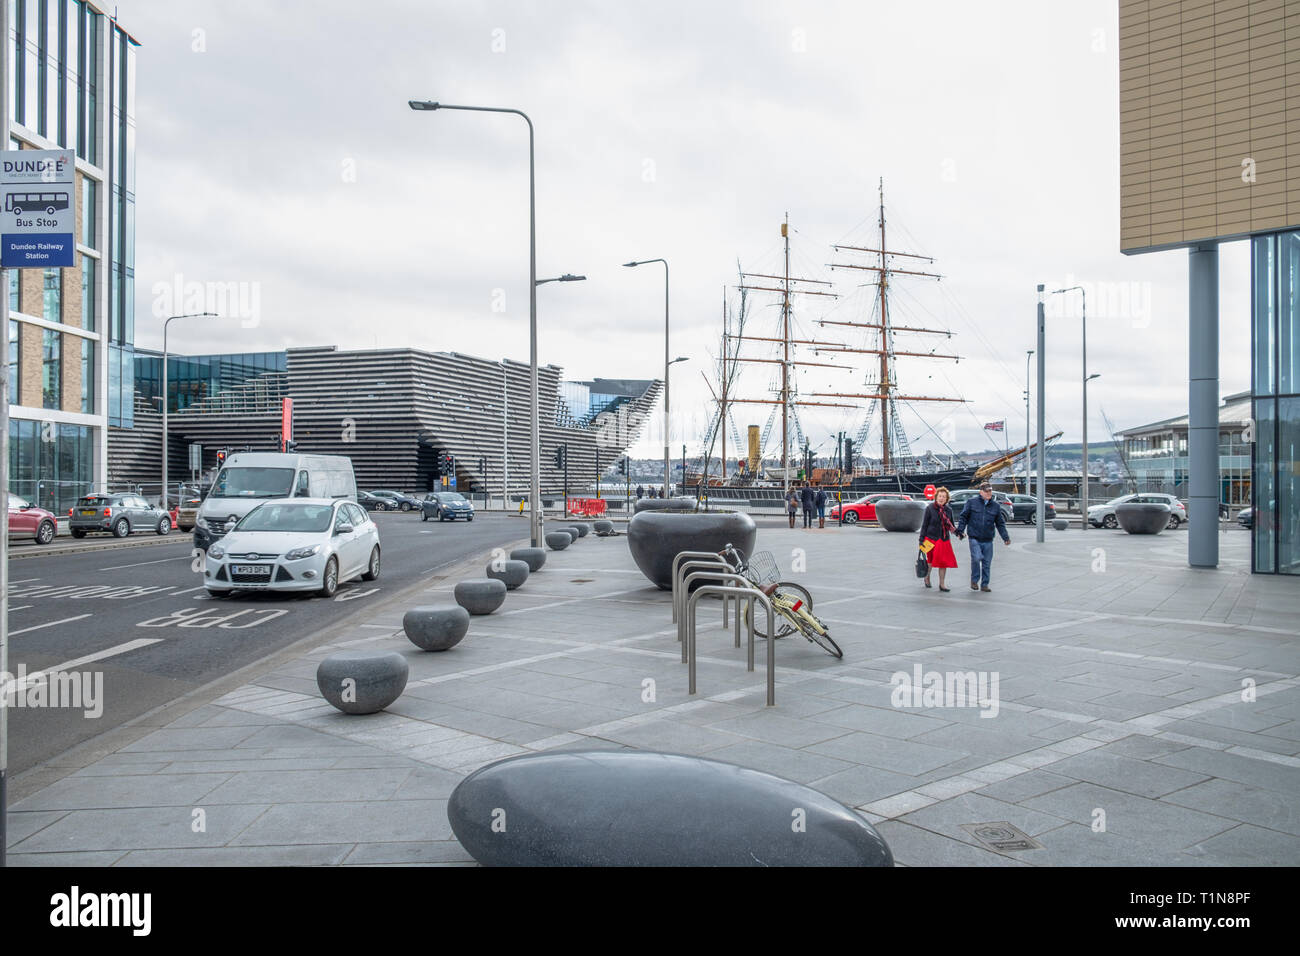 Dundee, Scotland, UK - March 22, 2019: Looking down Union St to the new V & A Museum on Riverside Esplanade where the masts of the ship RRS Discovery  Stock Photo